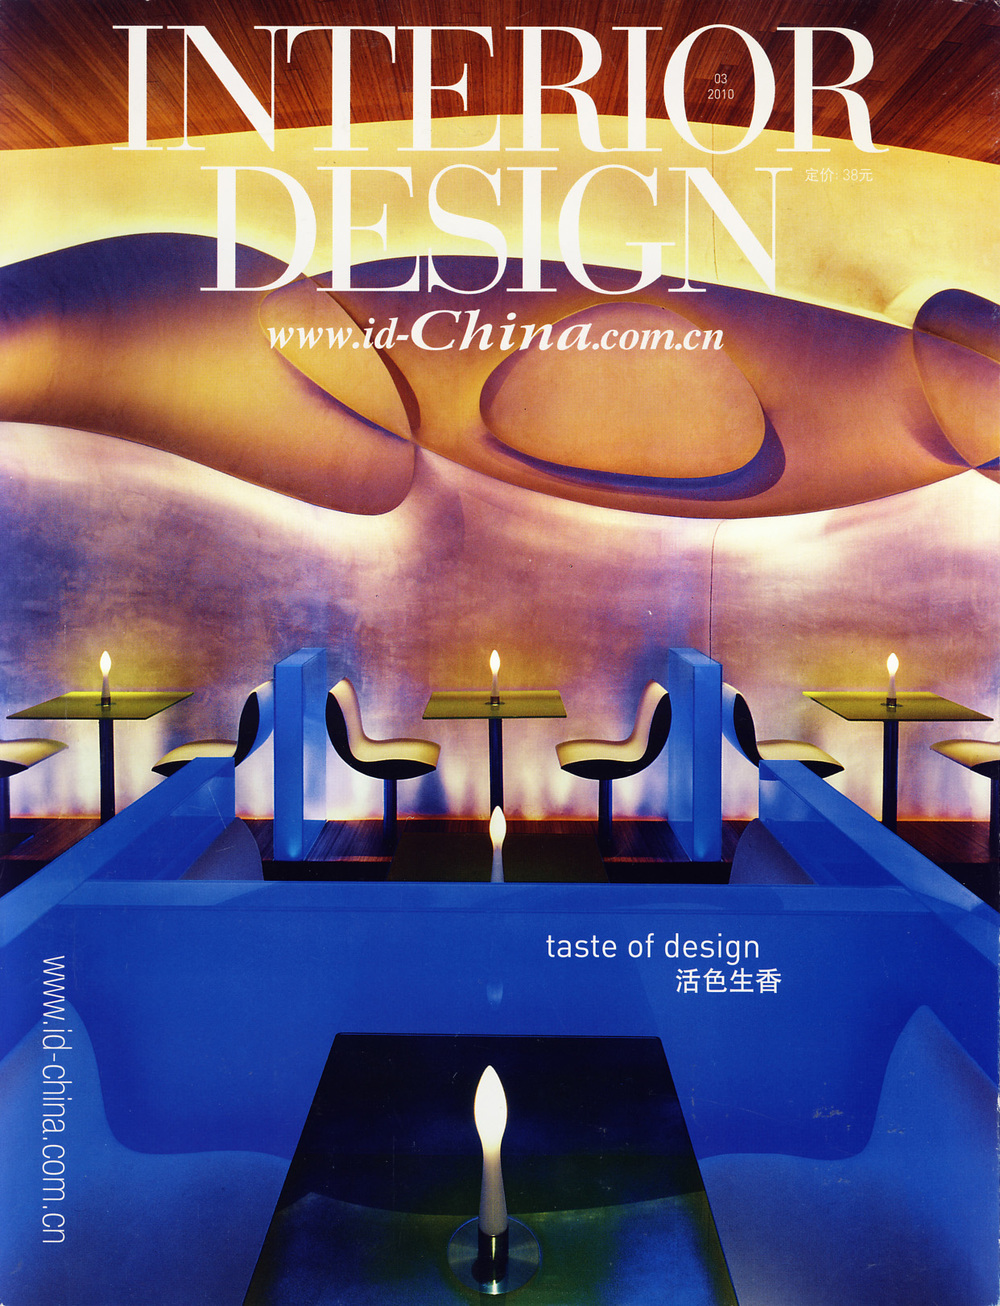 id China Cover_web.jpg